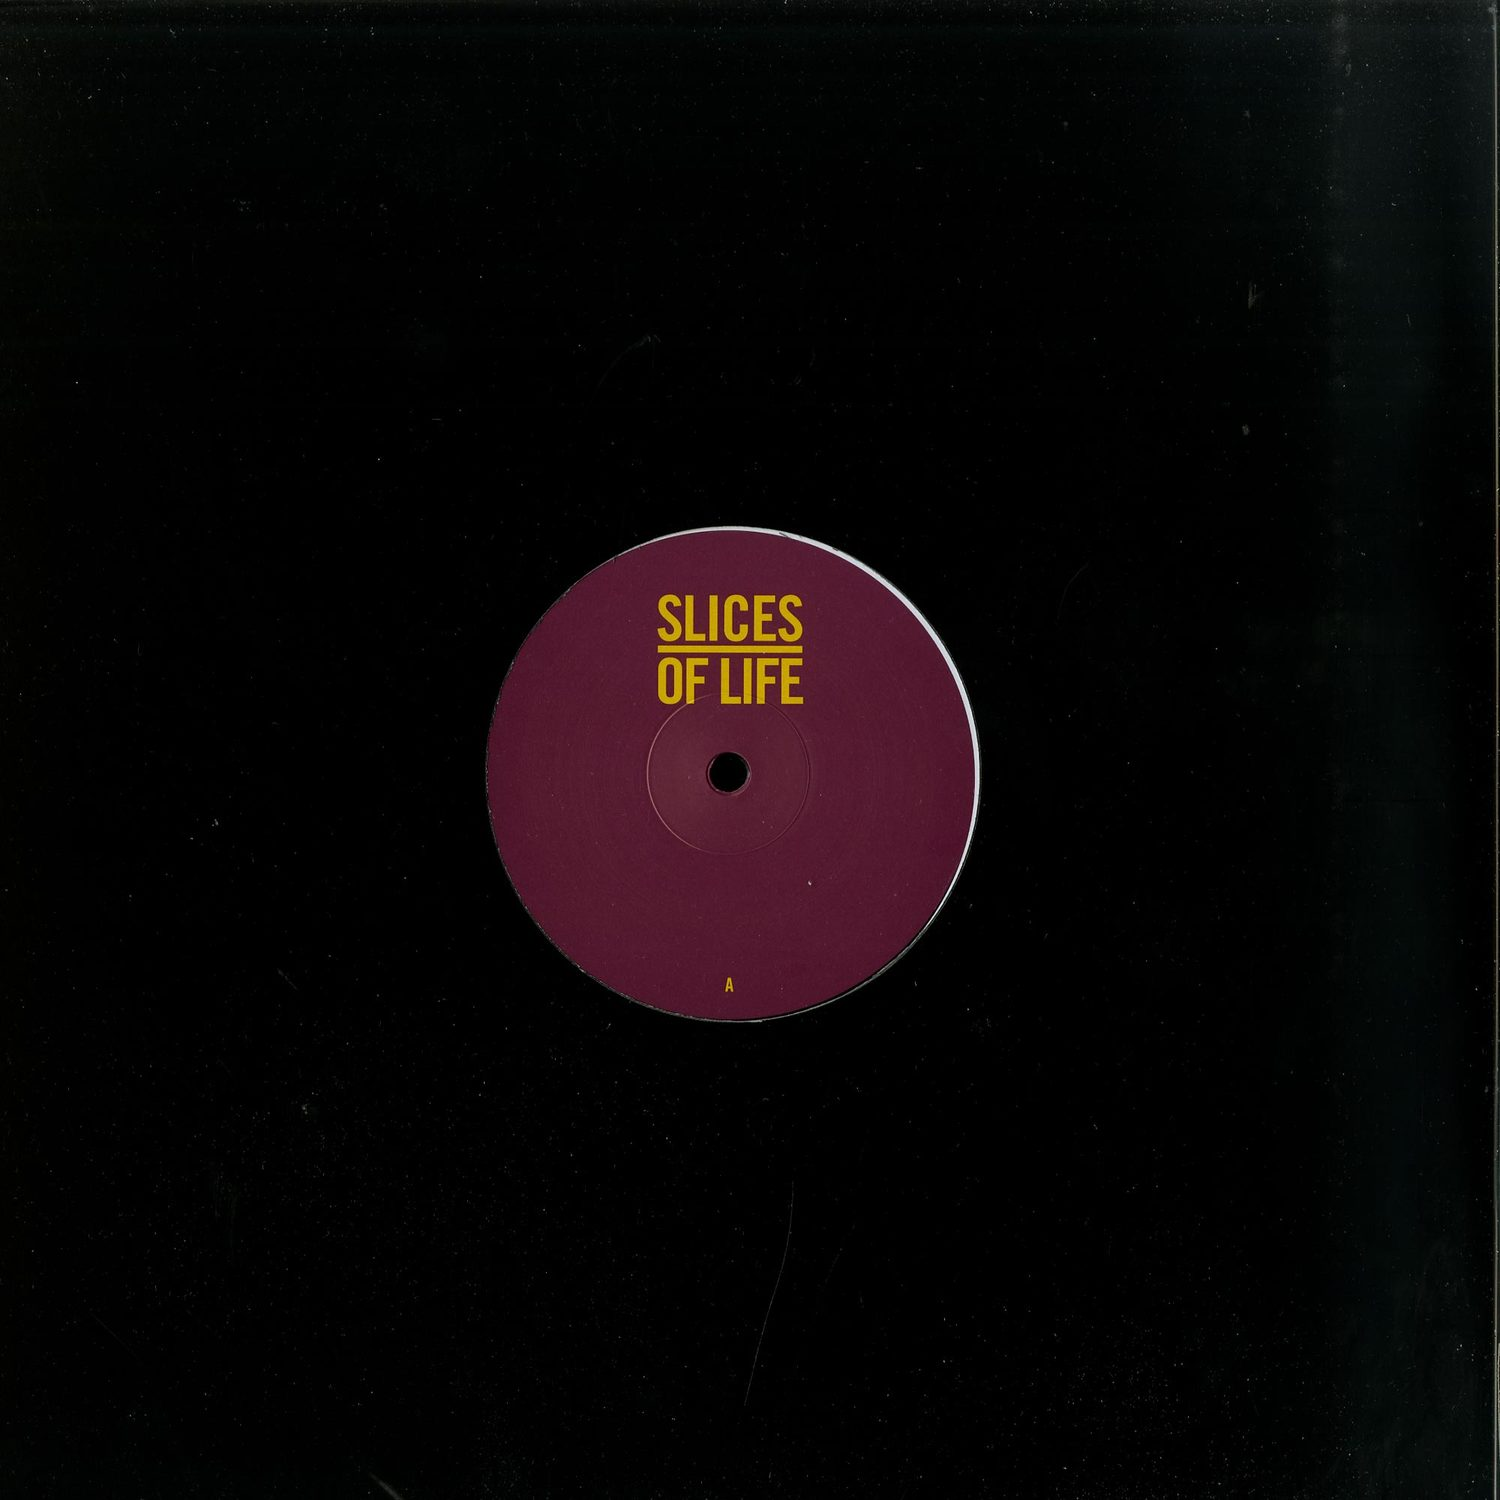 Cab Drivers / Oscar Schubaq / DJ Deep - SLICES OF LIFE 10.2